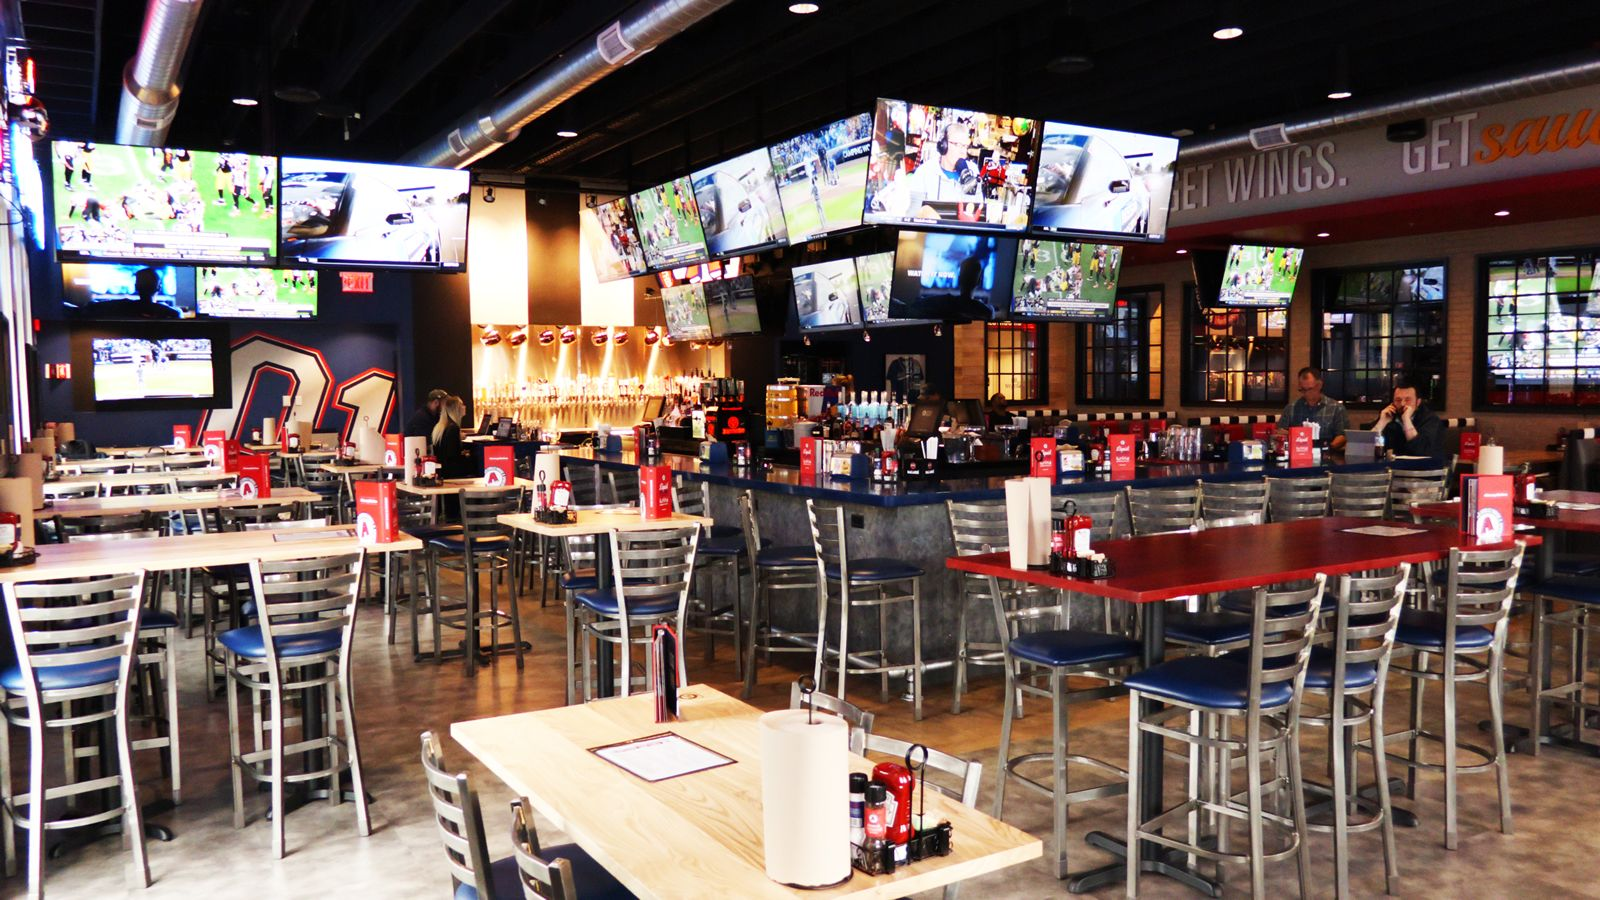 Arooga's Grille House & Sports Bar to Open Warwick, RI Location April 18th